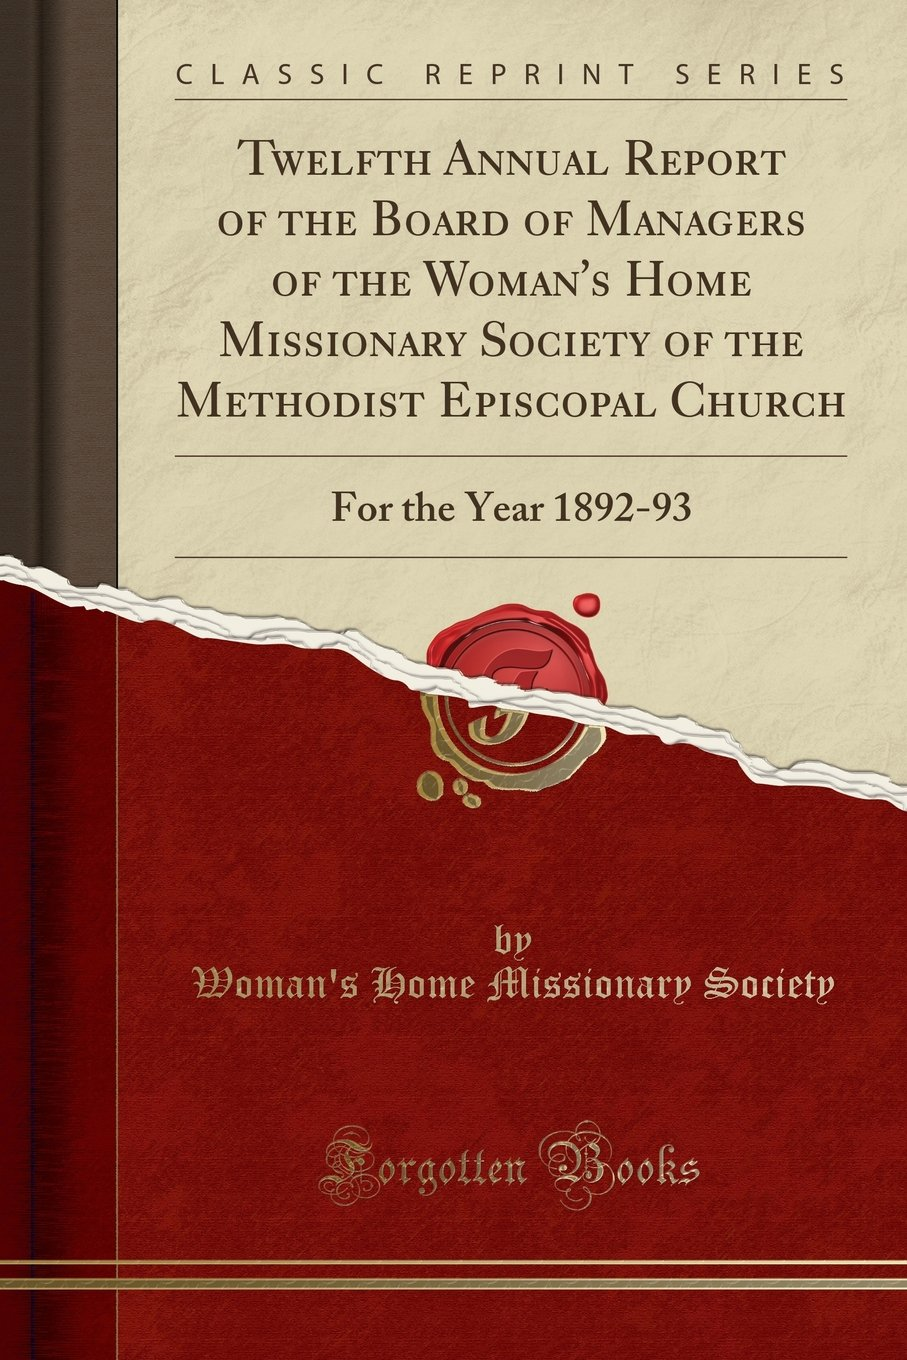 Download Twelfth Annual Report of the Board of Managers of the Woman's Home Missionary Society of the Methodist Episcopal Church: For the Year 1892-93 (Classic Reprint) pdf epub